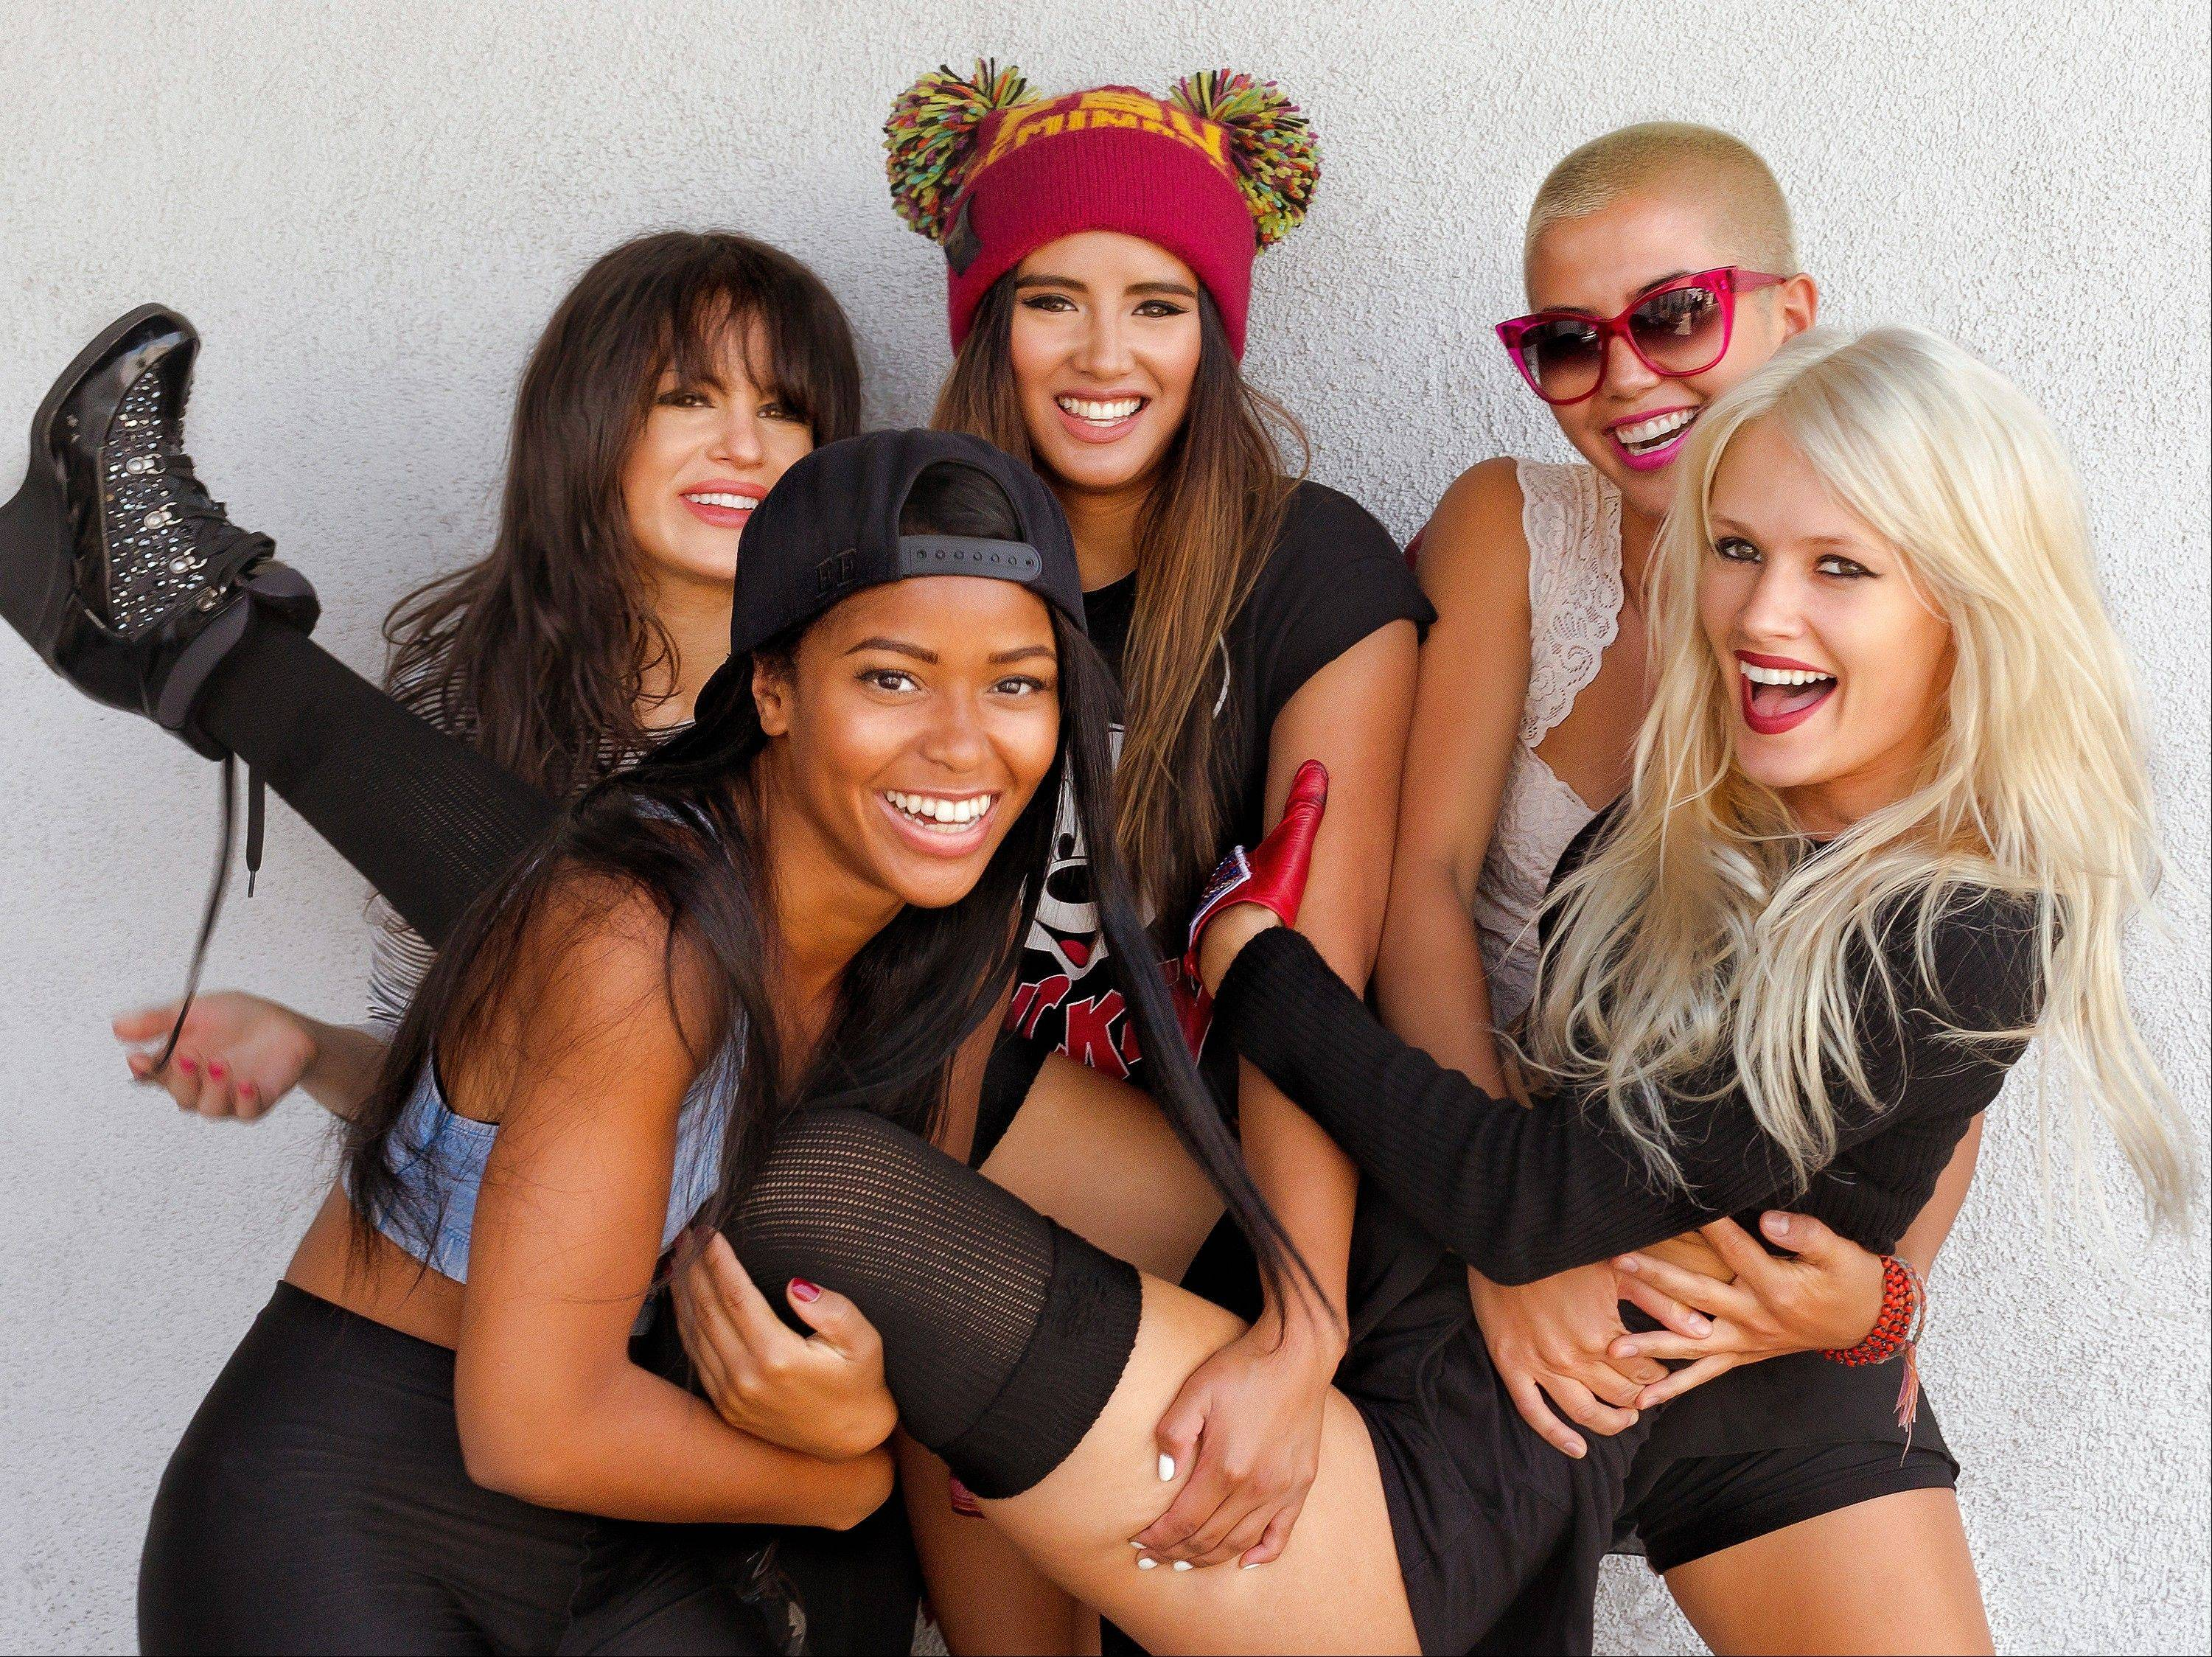 The Pussycat Dolls got a makeover as G.R.L. with Simone Battle, clockwise from foreground left, Natasha Slayton, Emmalyn Estrada, Paula Van Oppen and Lauren Bennett.